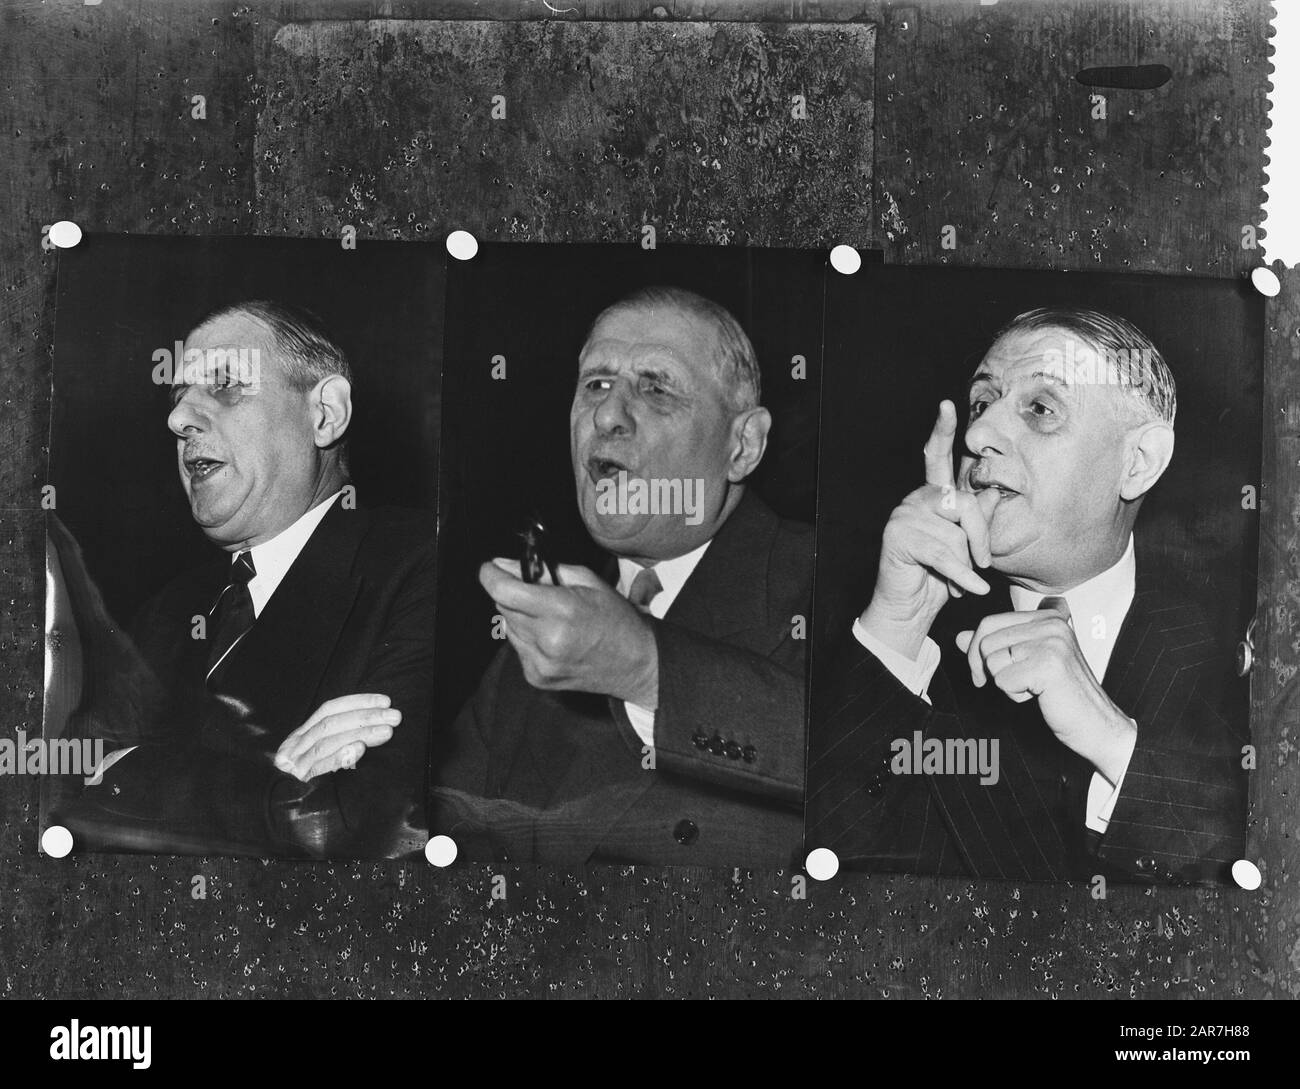 Charles De Gaulle 1958 High Resolution Stock Photography and Images - Alamy